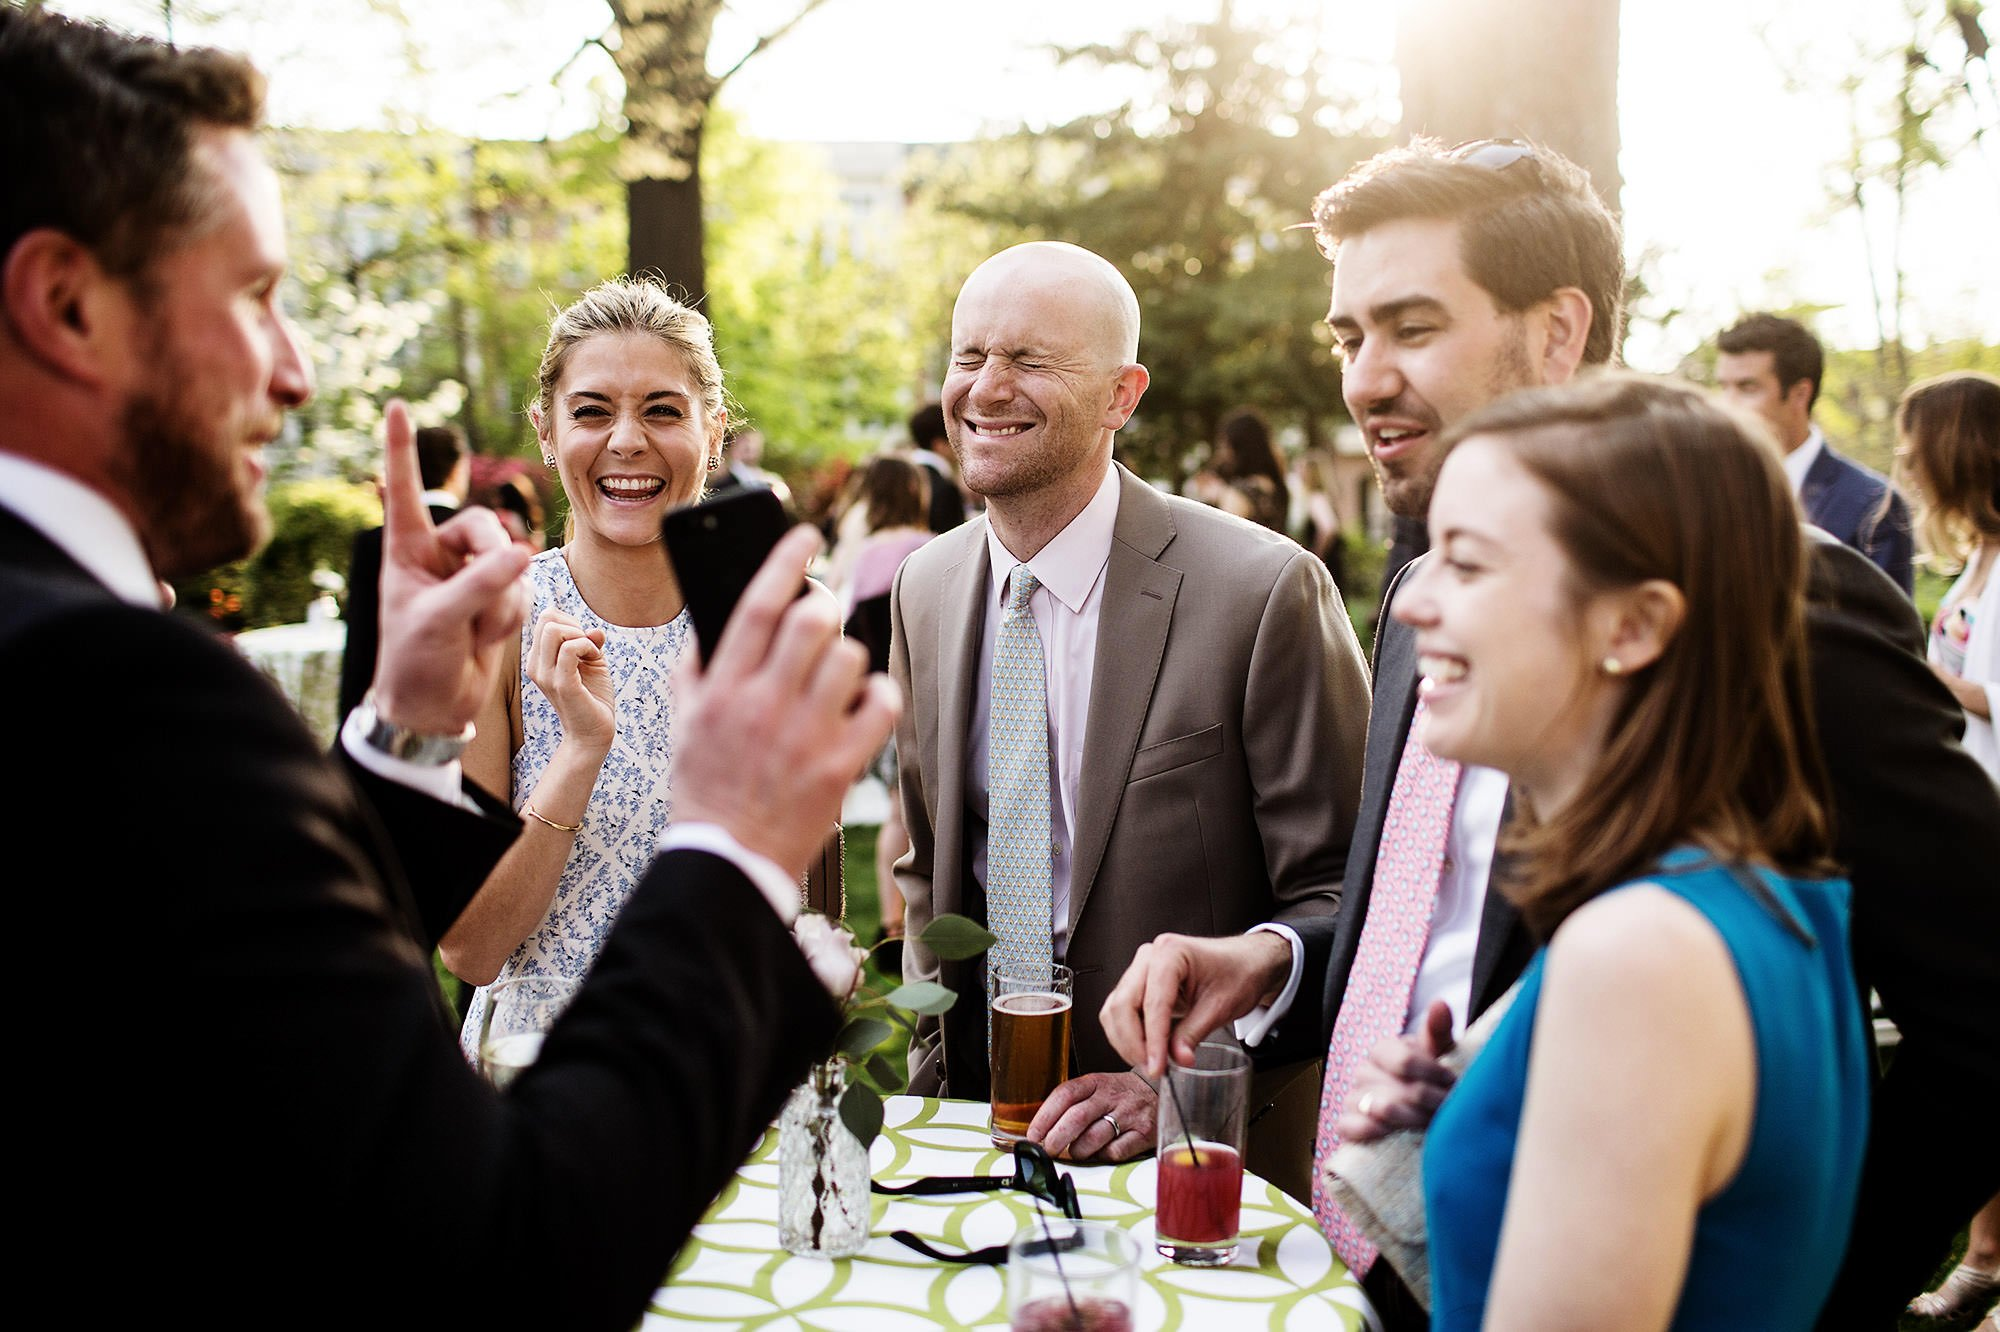 Guests laugh during cocktail hour.